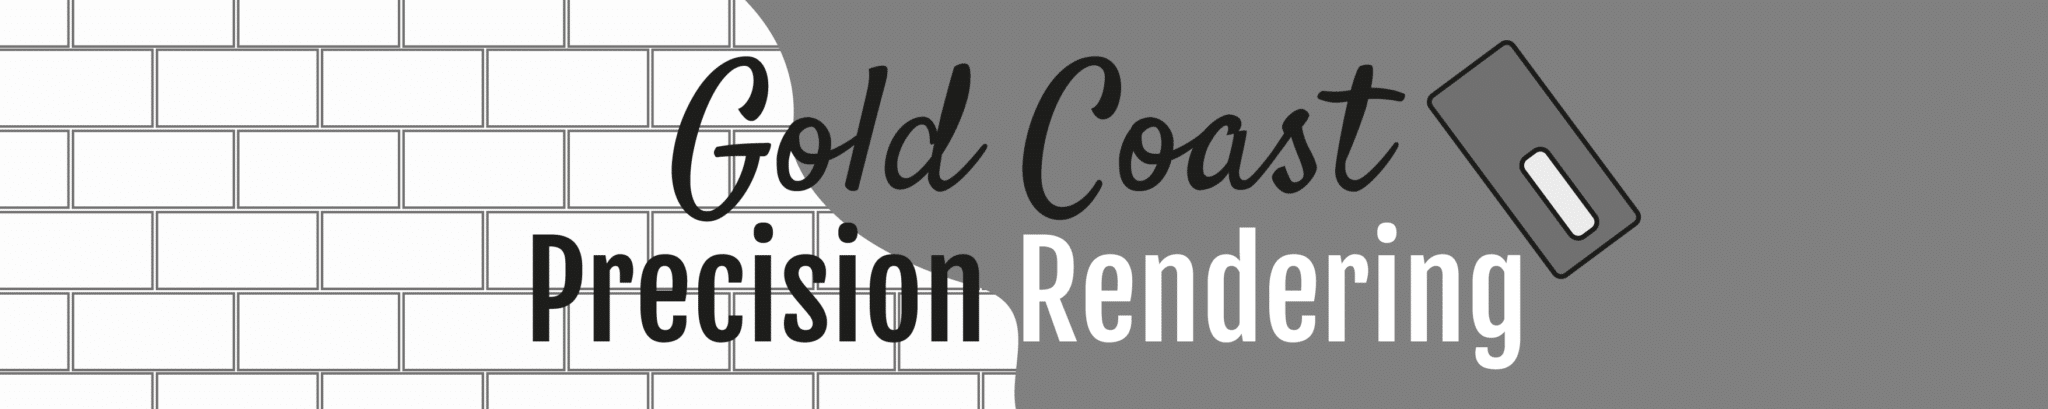 Gold Coast Precision Rendering - Professional Render service all over the Gold Coast, Brisbane and Tweed Heads